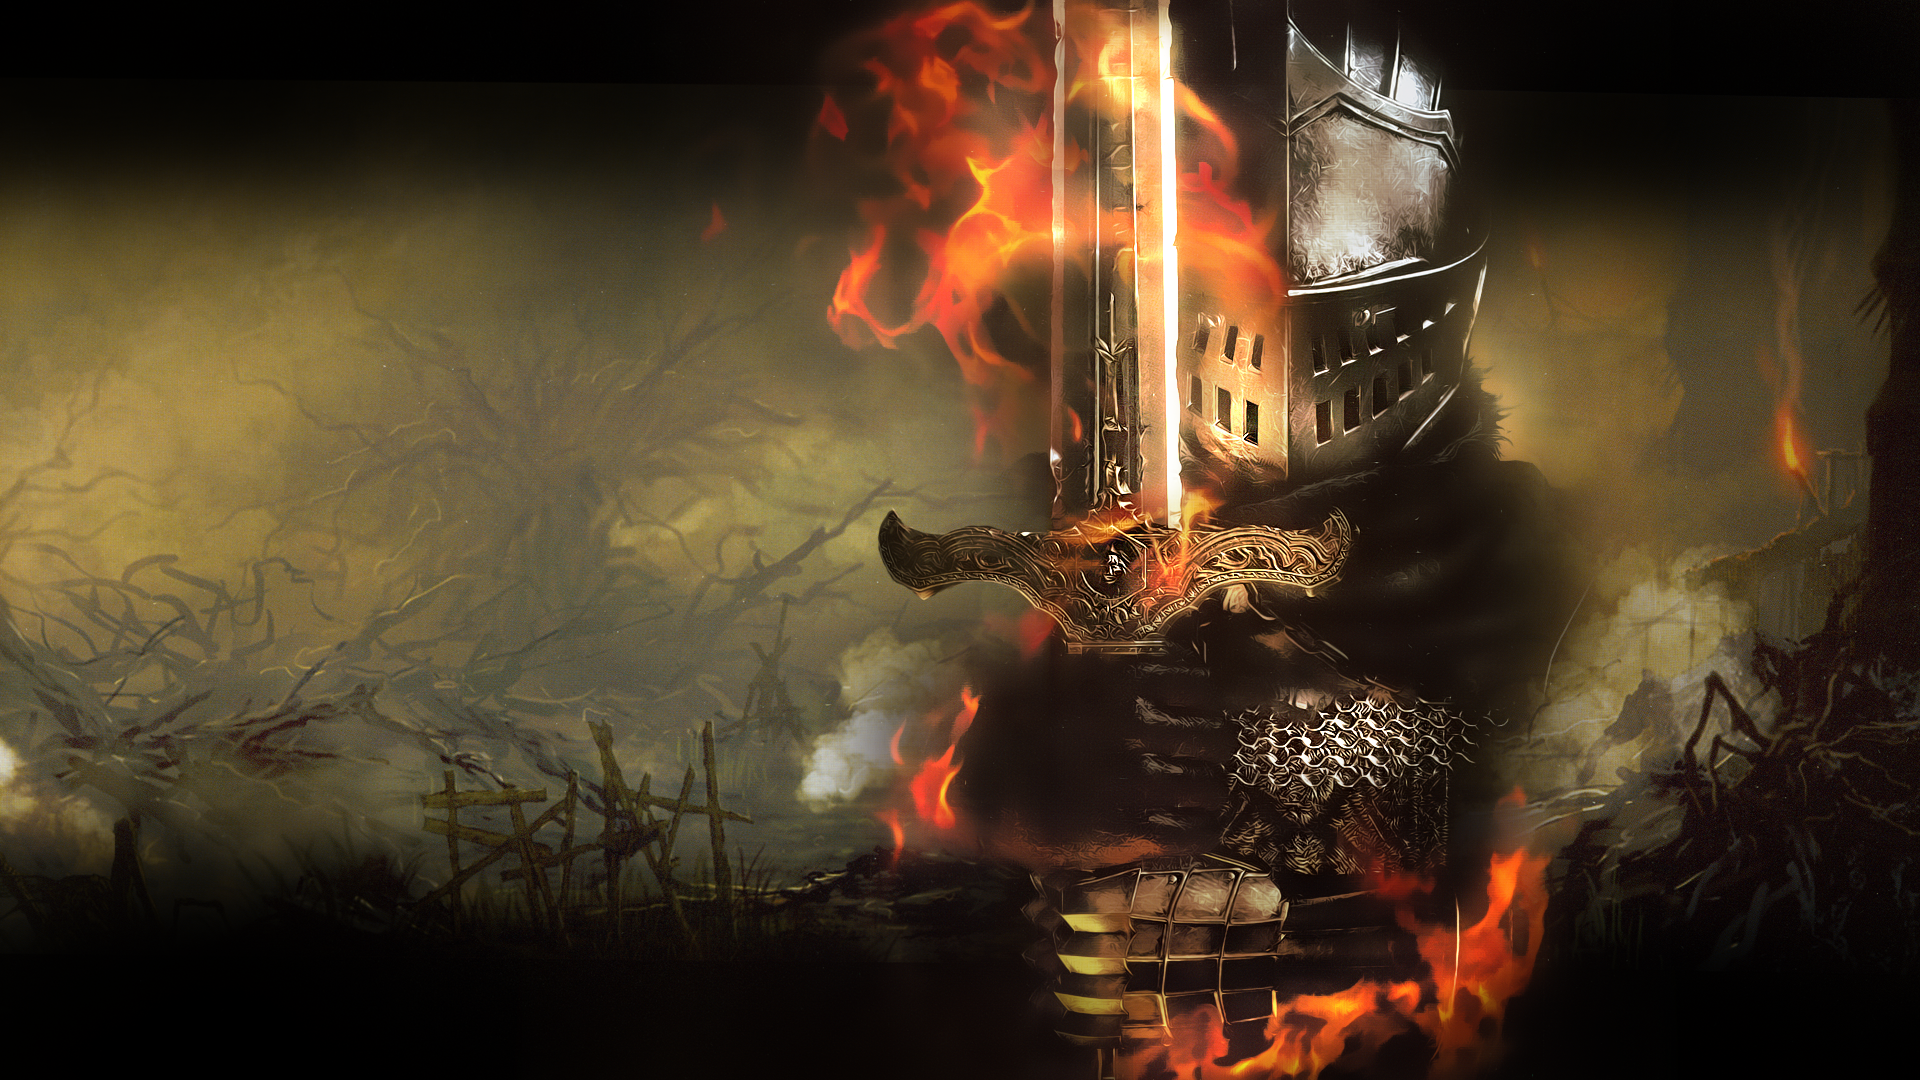 Dark Souls Wallpaper : Find best latest Dark Souls Wallpaper in HD for your PC desktop background and mobile phones.